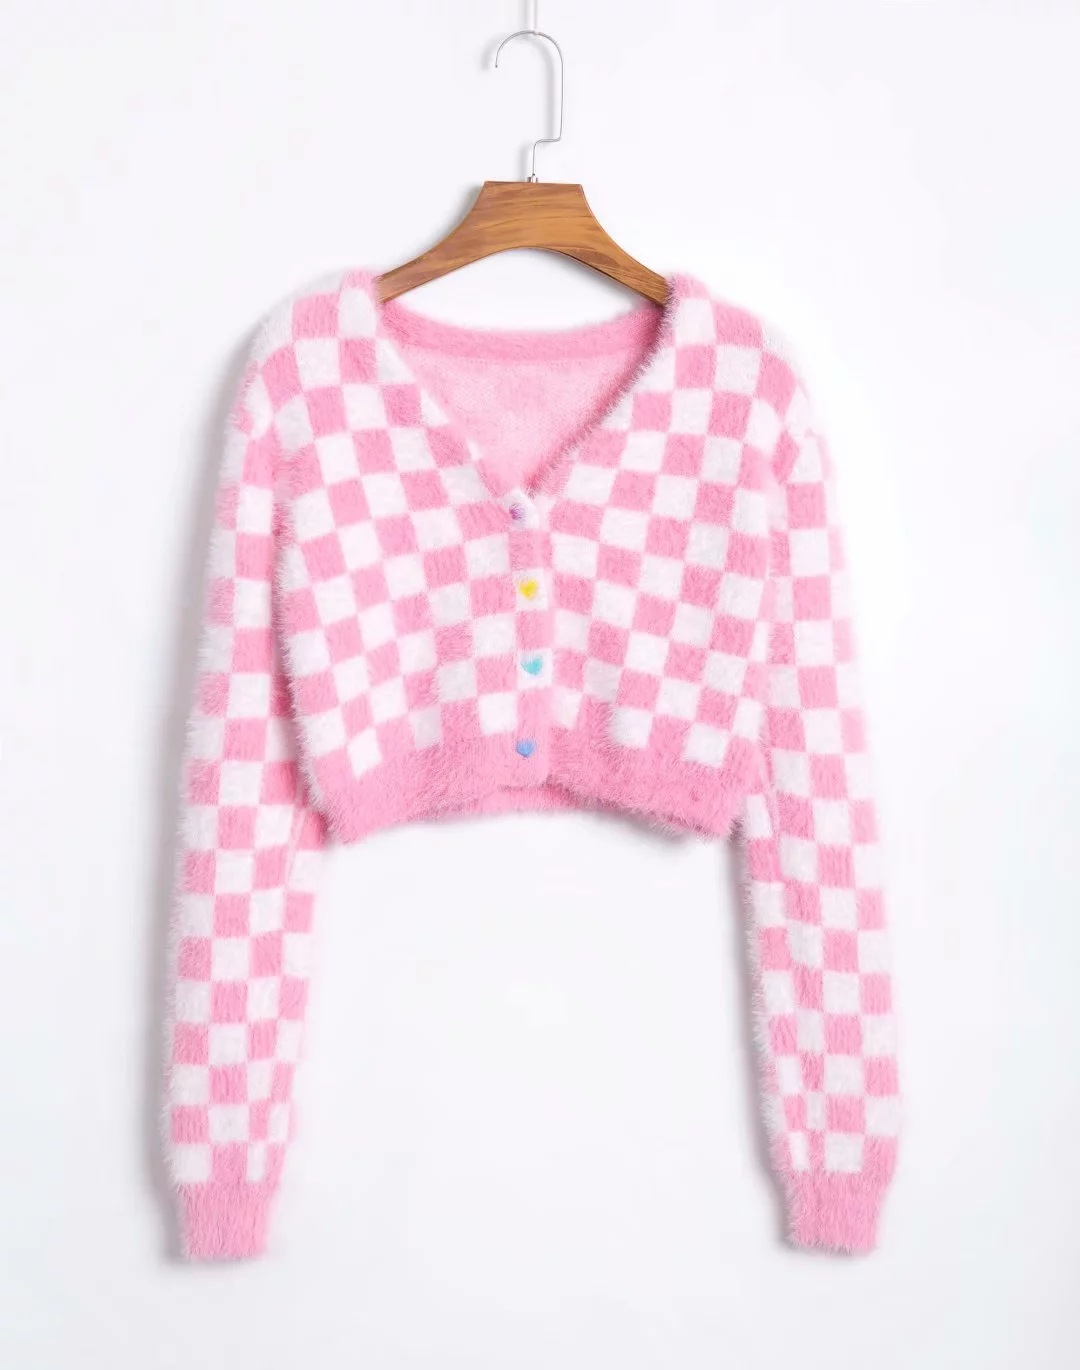 Vintage argyle knitted cardigans women sweaters kawaii mohair sweater winter korean sweater clothes 2020 new 8